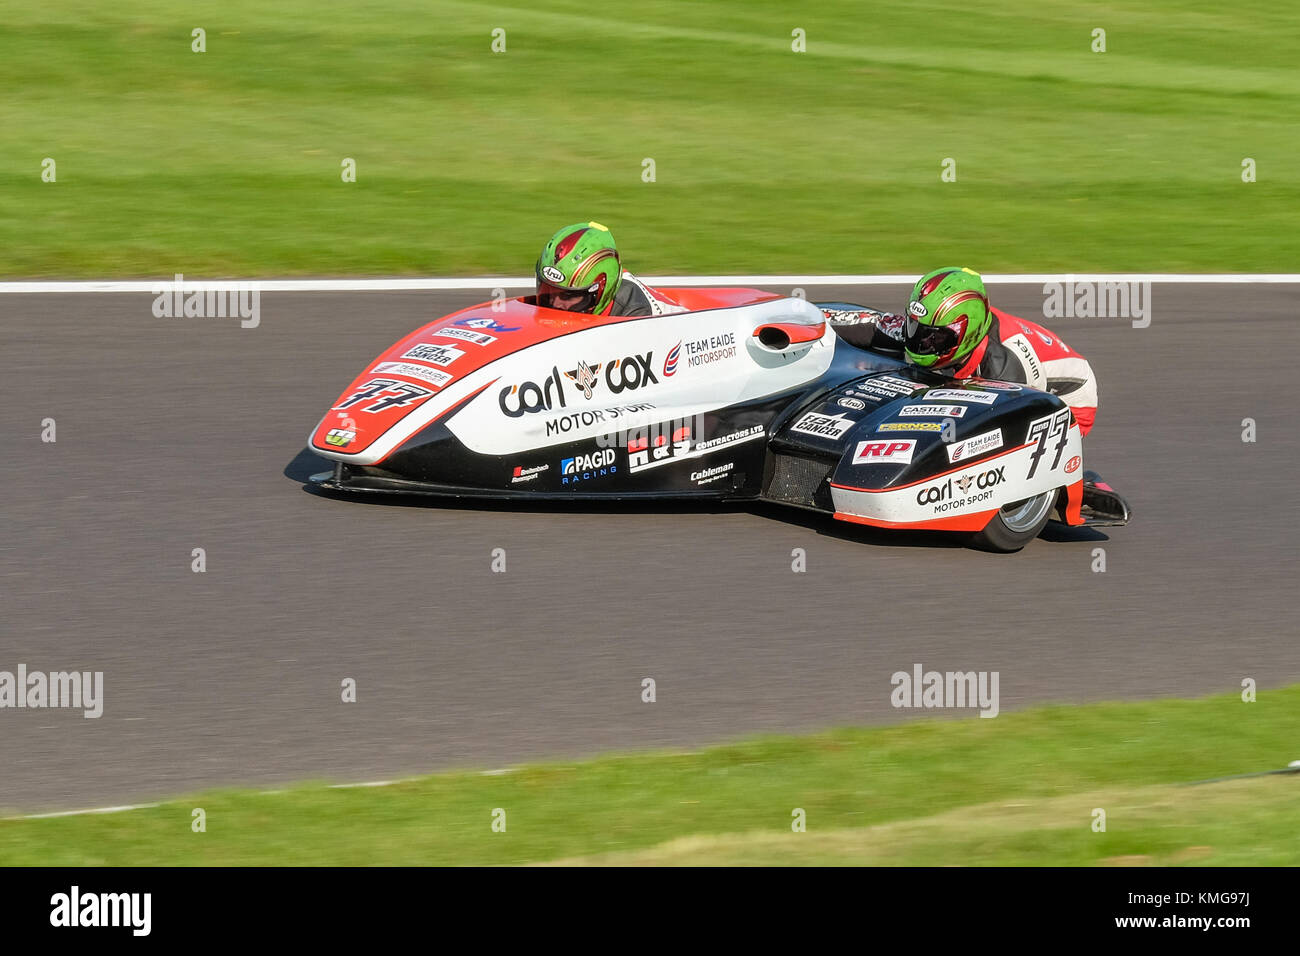 Tim and Tristan Reeves during the Hyundai British Sidecar Championship, Round 8 at Cadwell in Lincolnshire 2017 - Stock Image